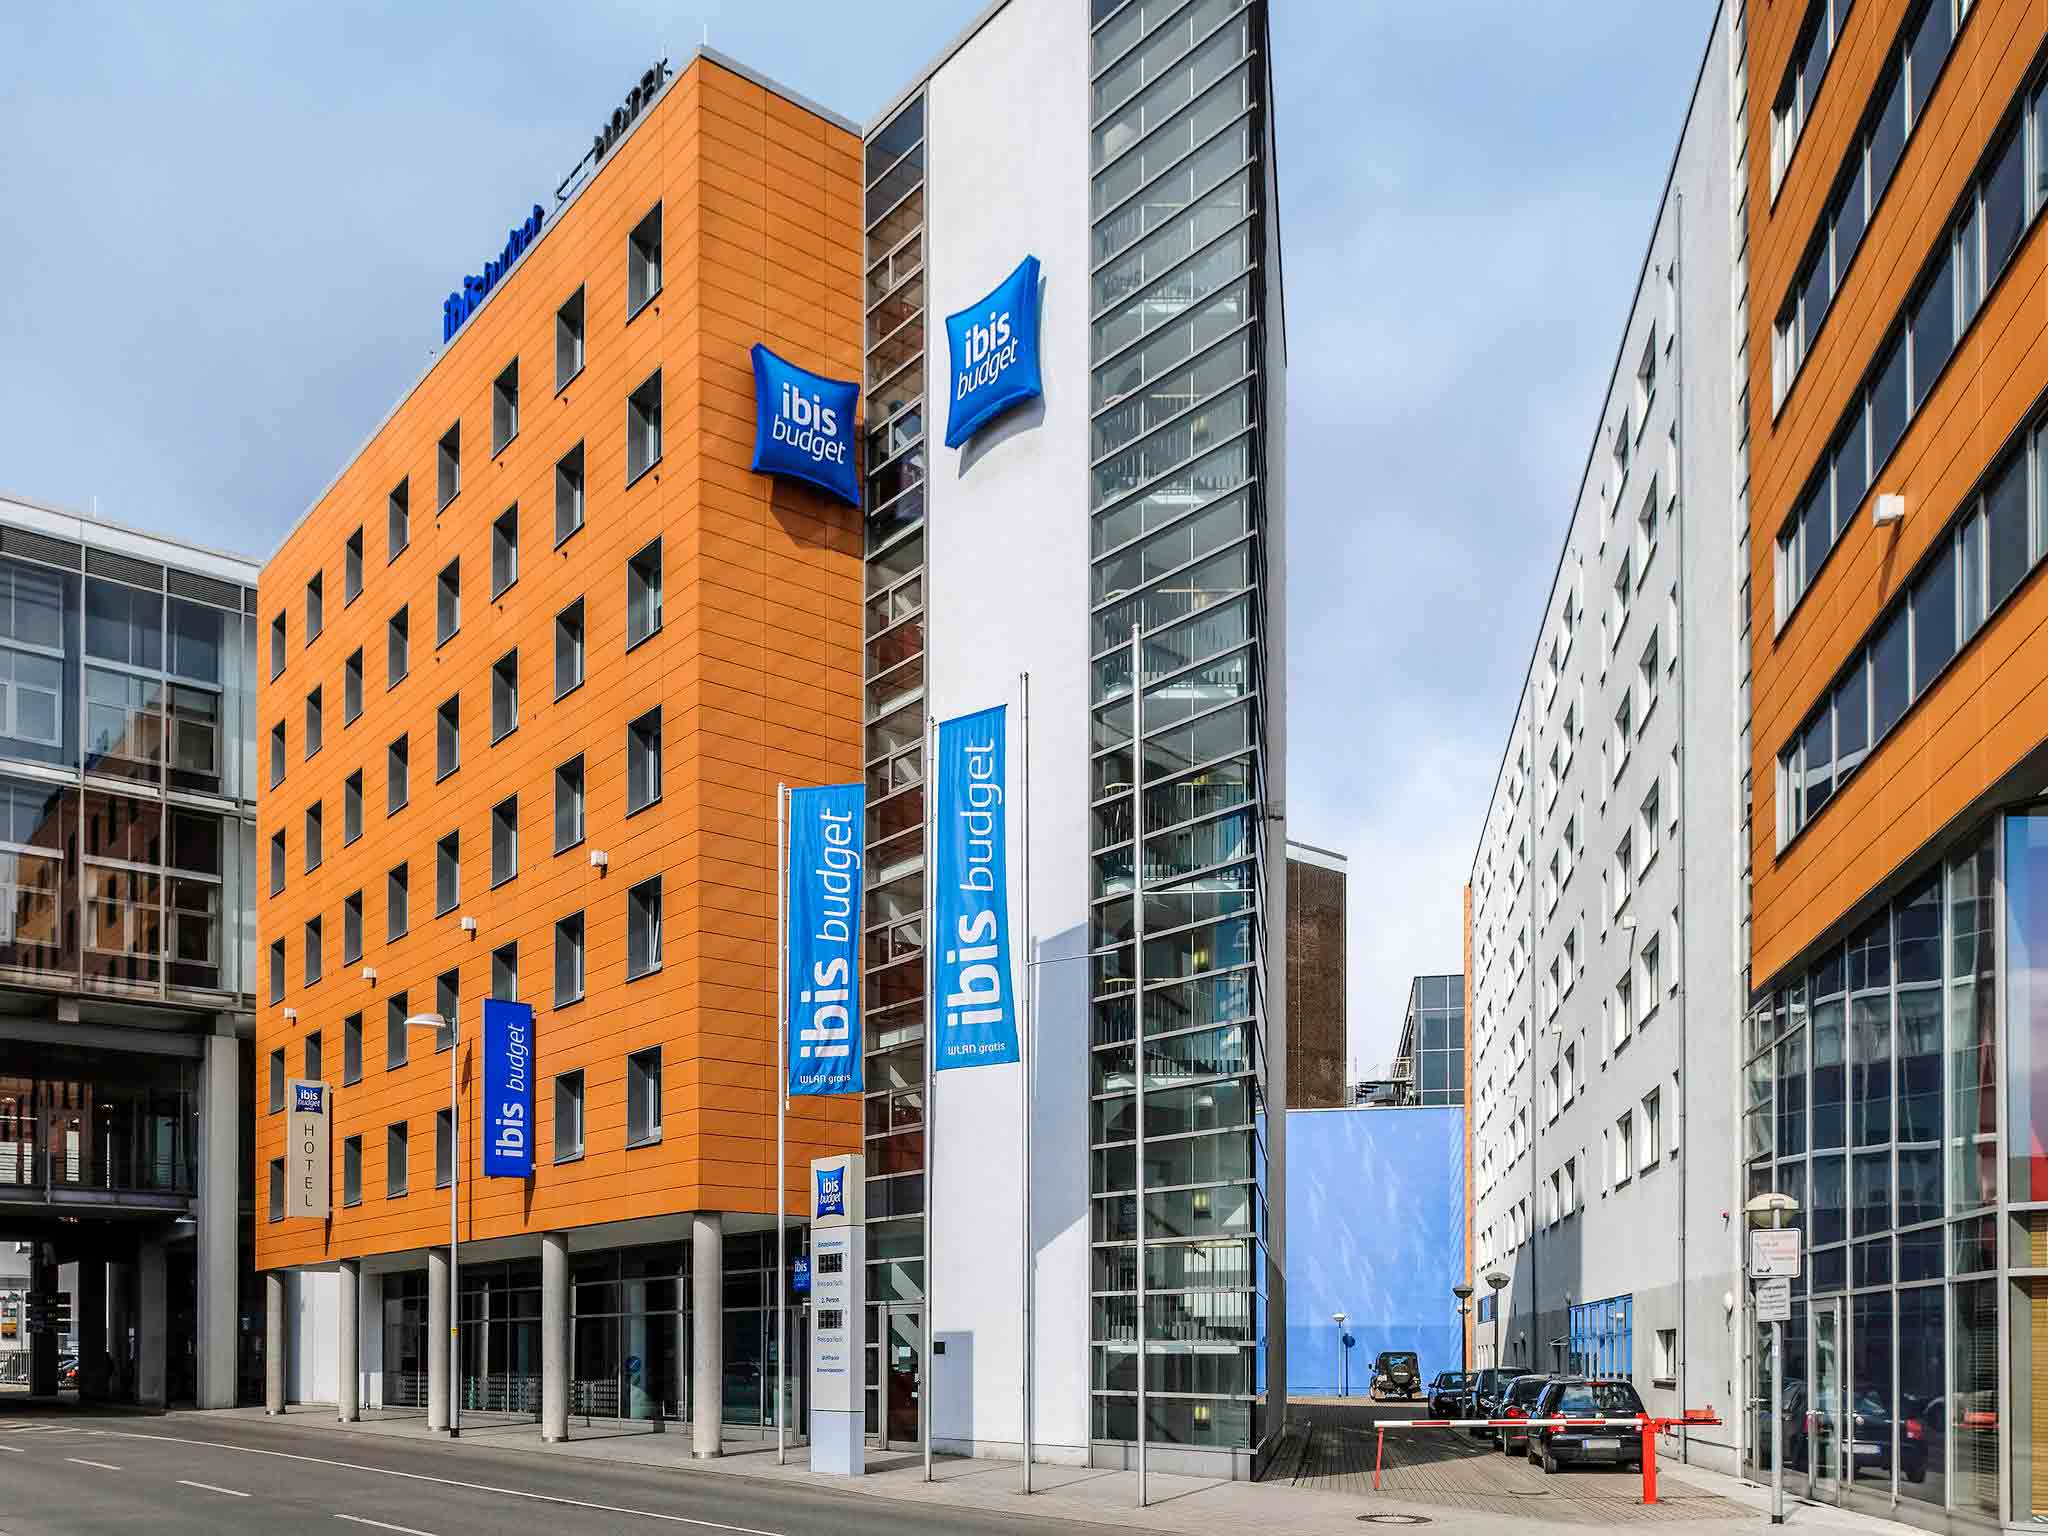 Hotel in hannover ibis budget hannover hauptbahnhof for Hotel hannover